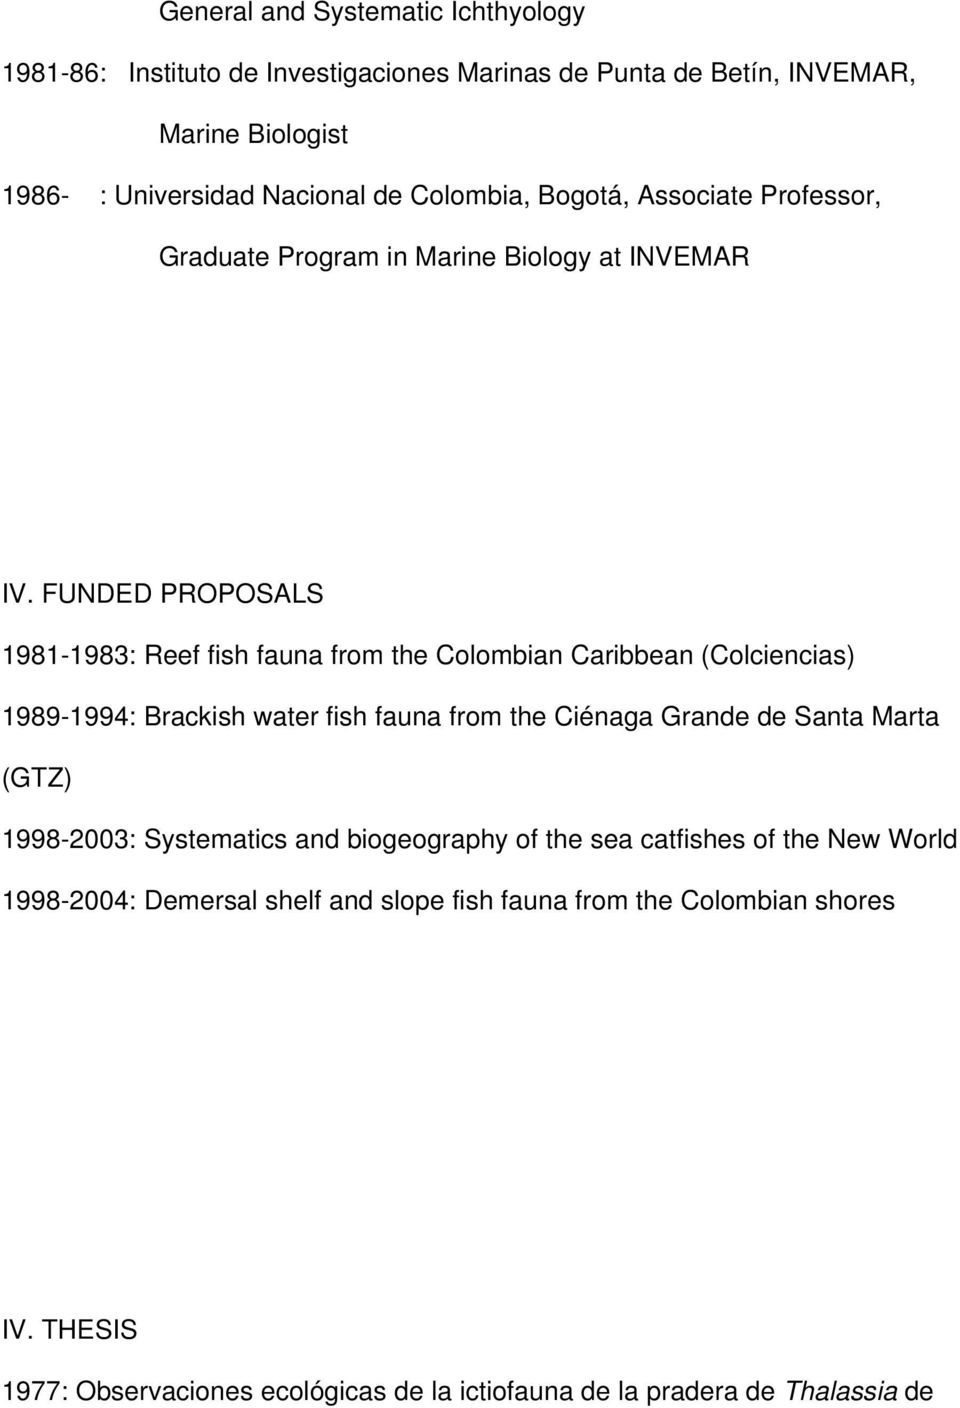 FUNDED PROPOSALS 1981-1983: Reef fish fauna from the Colombian Caribbean (Colciencias) 1989-1994: Brackish water fish fauna from the Ciénaga Grande de Santa Marta